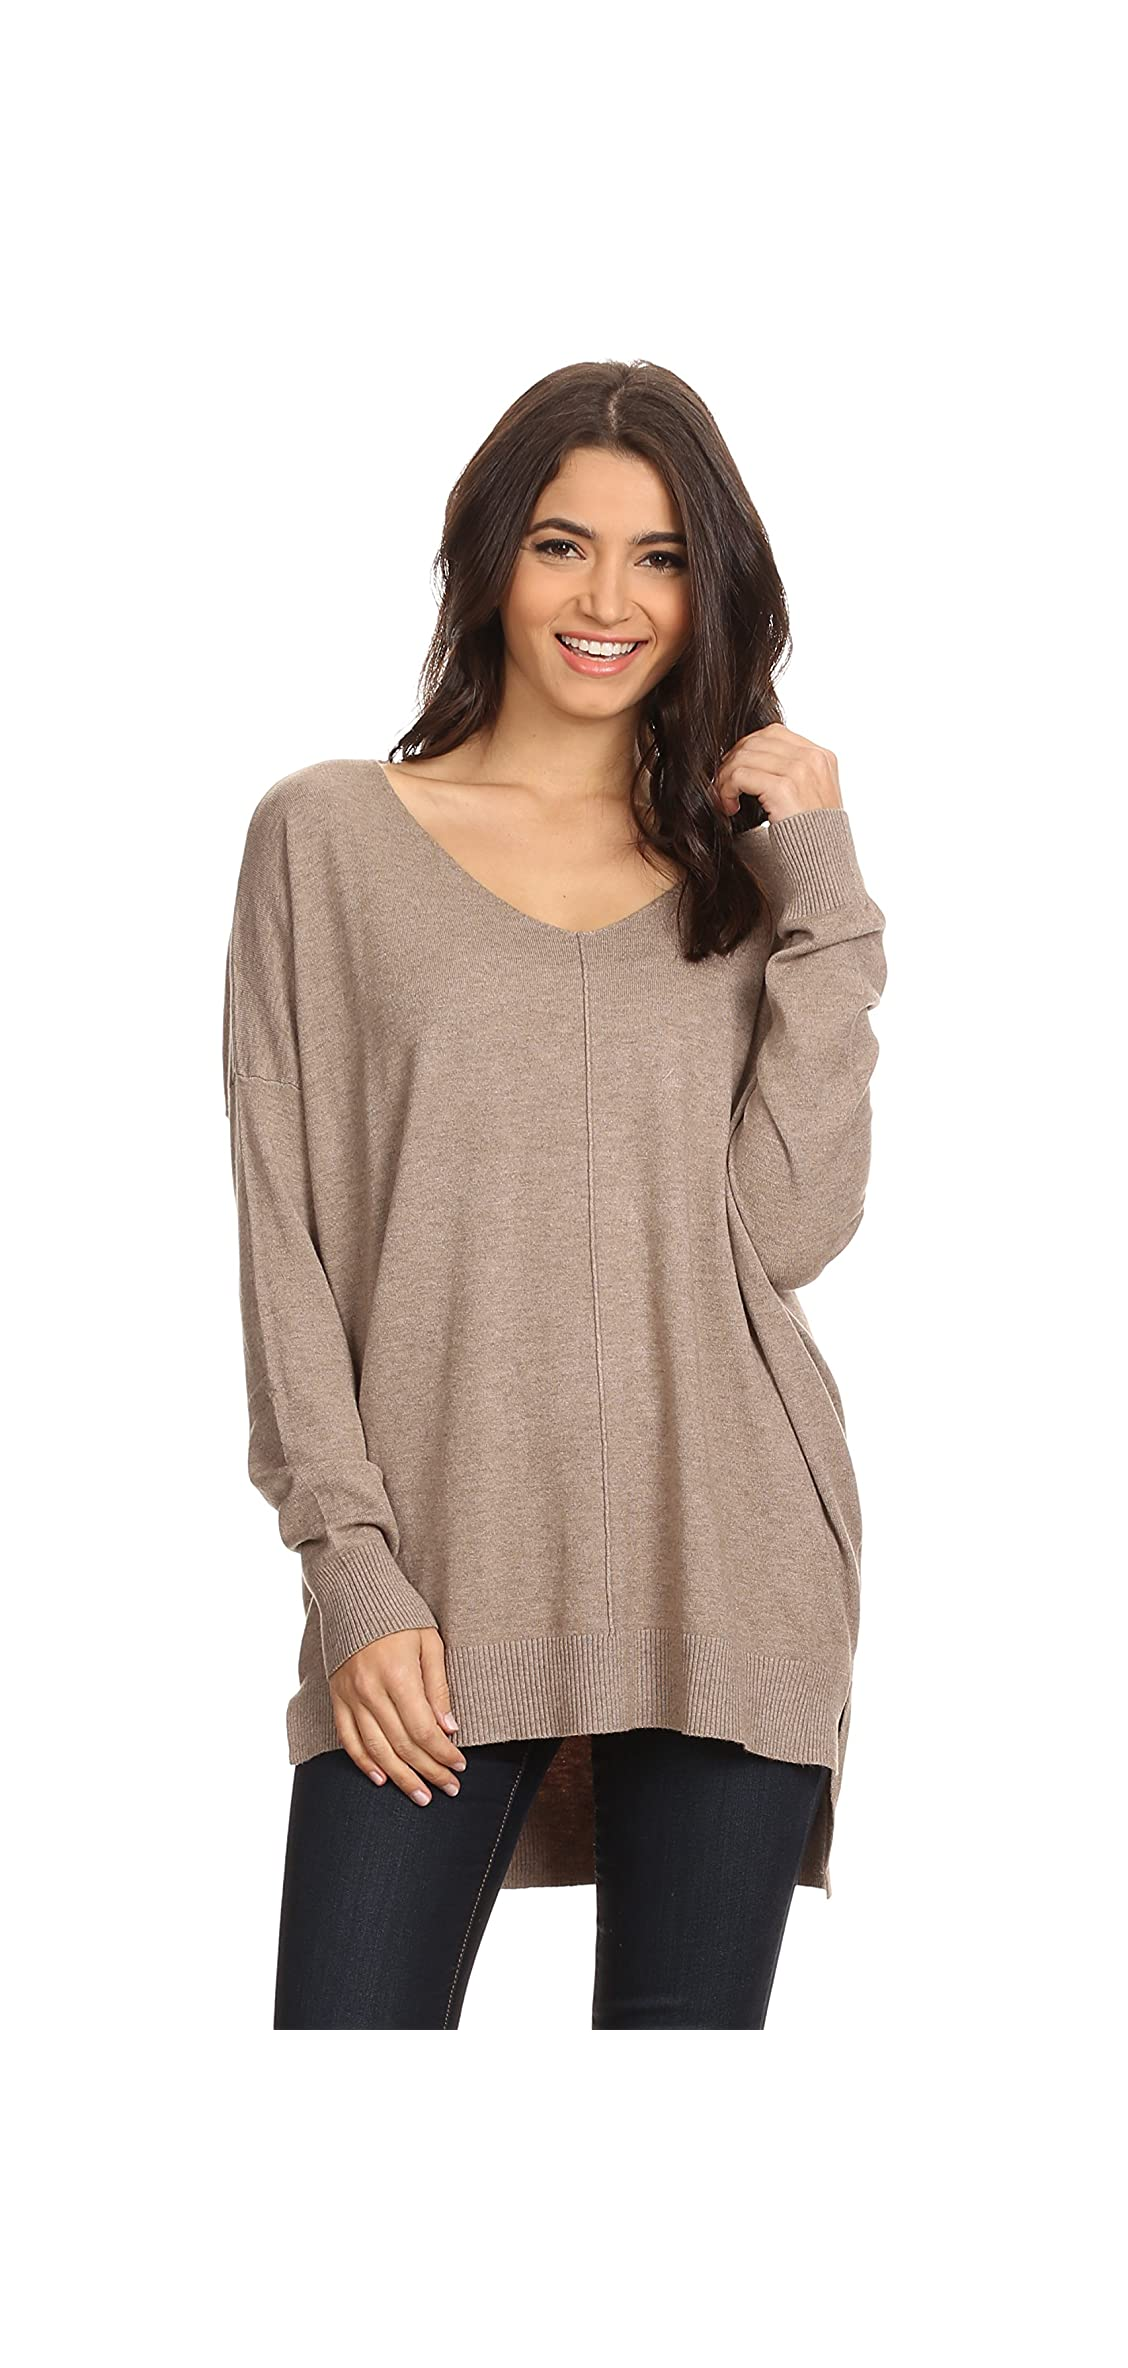 Ad Women's Oversized Extra Soft V-neck Pullover Sweater Long